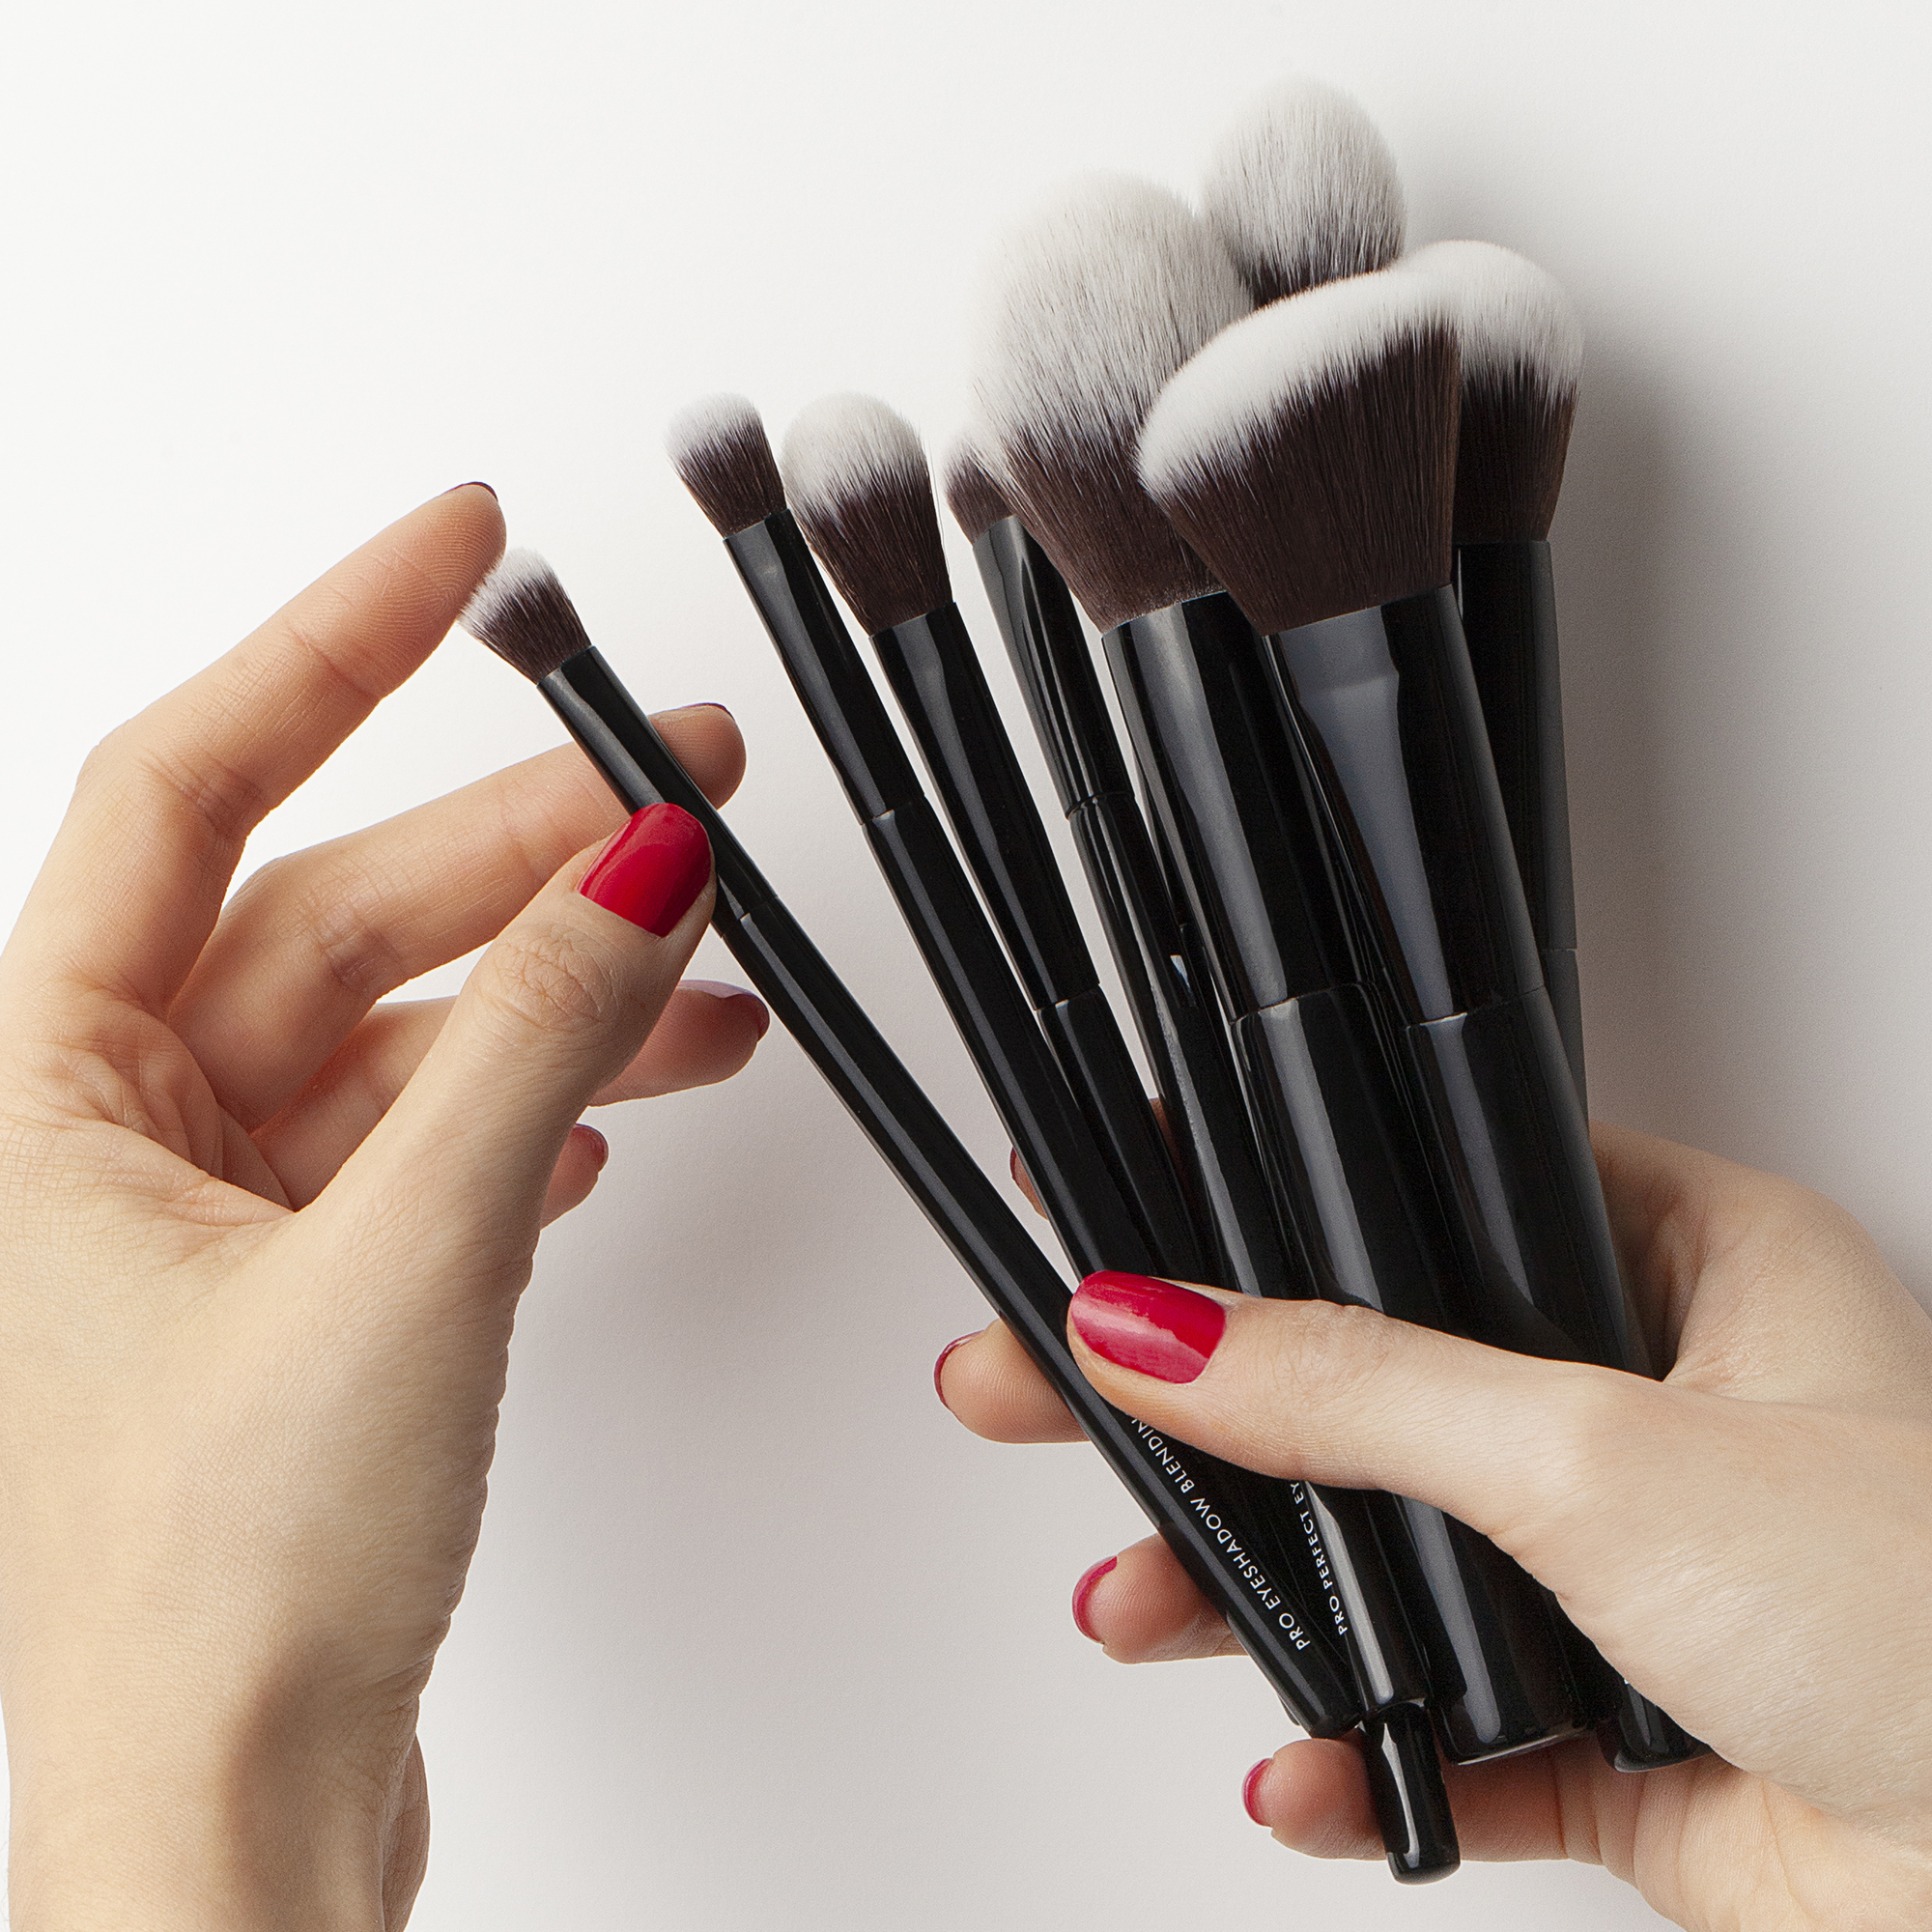 Pro Blending Blush Brush by Beauty Pie